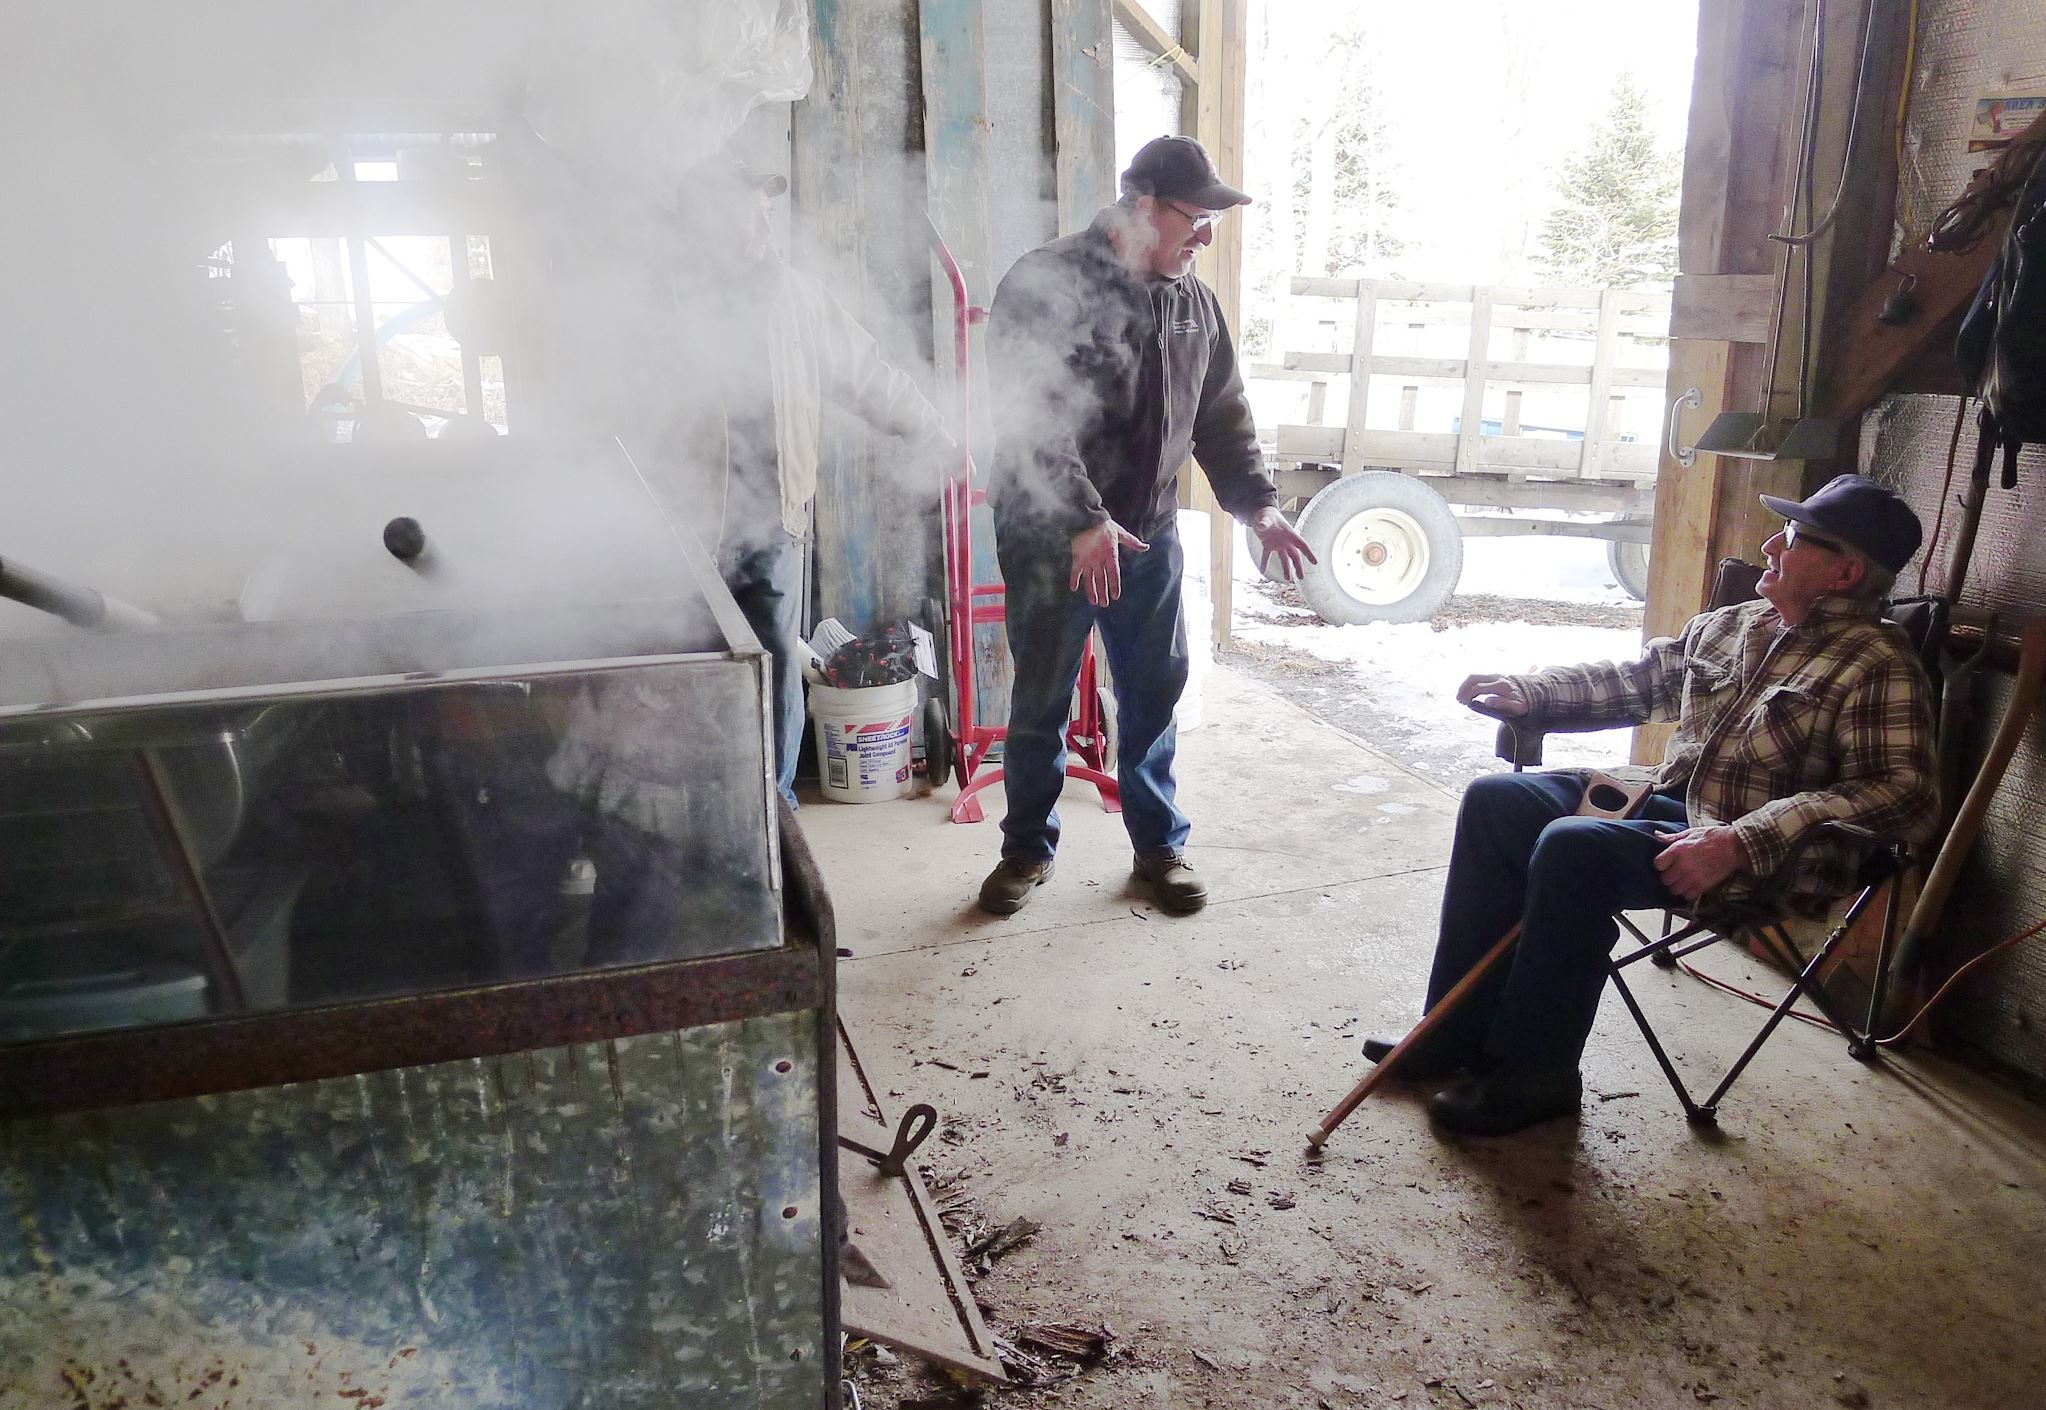 20140224hobbmaple1food In the steamy sugarhouse at Sweet Traditions near Corry, Erie County, John Wiggers Sr., seated at right, talks with neighbor Steve Anderson, standing, and son-in-law Joe Catalfu, standing in the steam behind him, while they all watch Mr. Wiggers' grandson Casey Catalfu boiling the season's first maple sap.